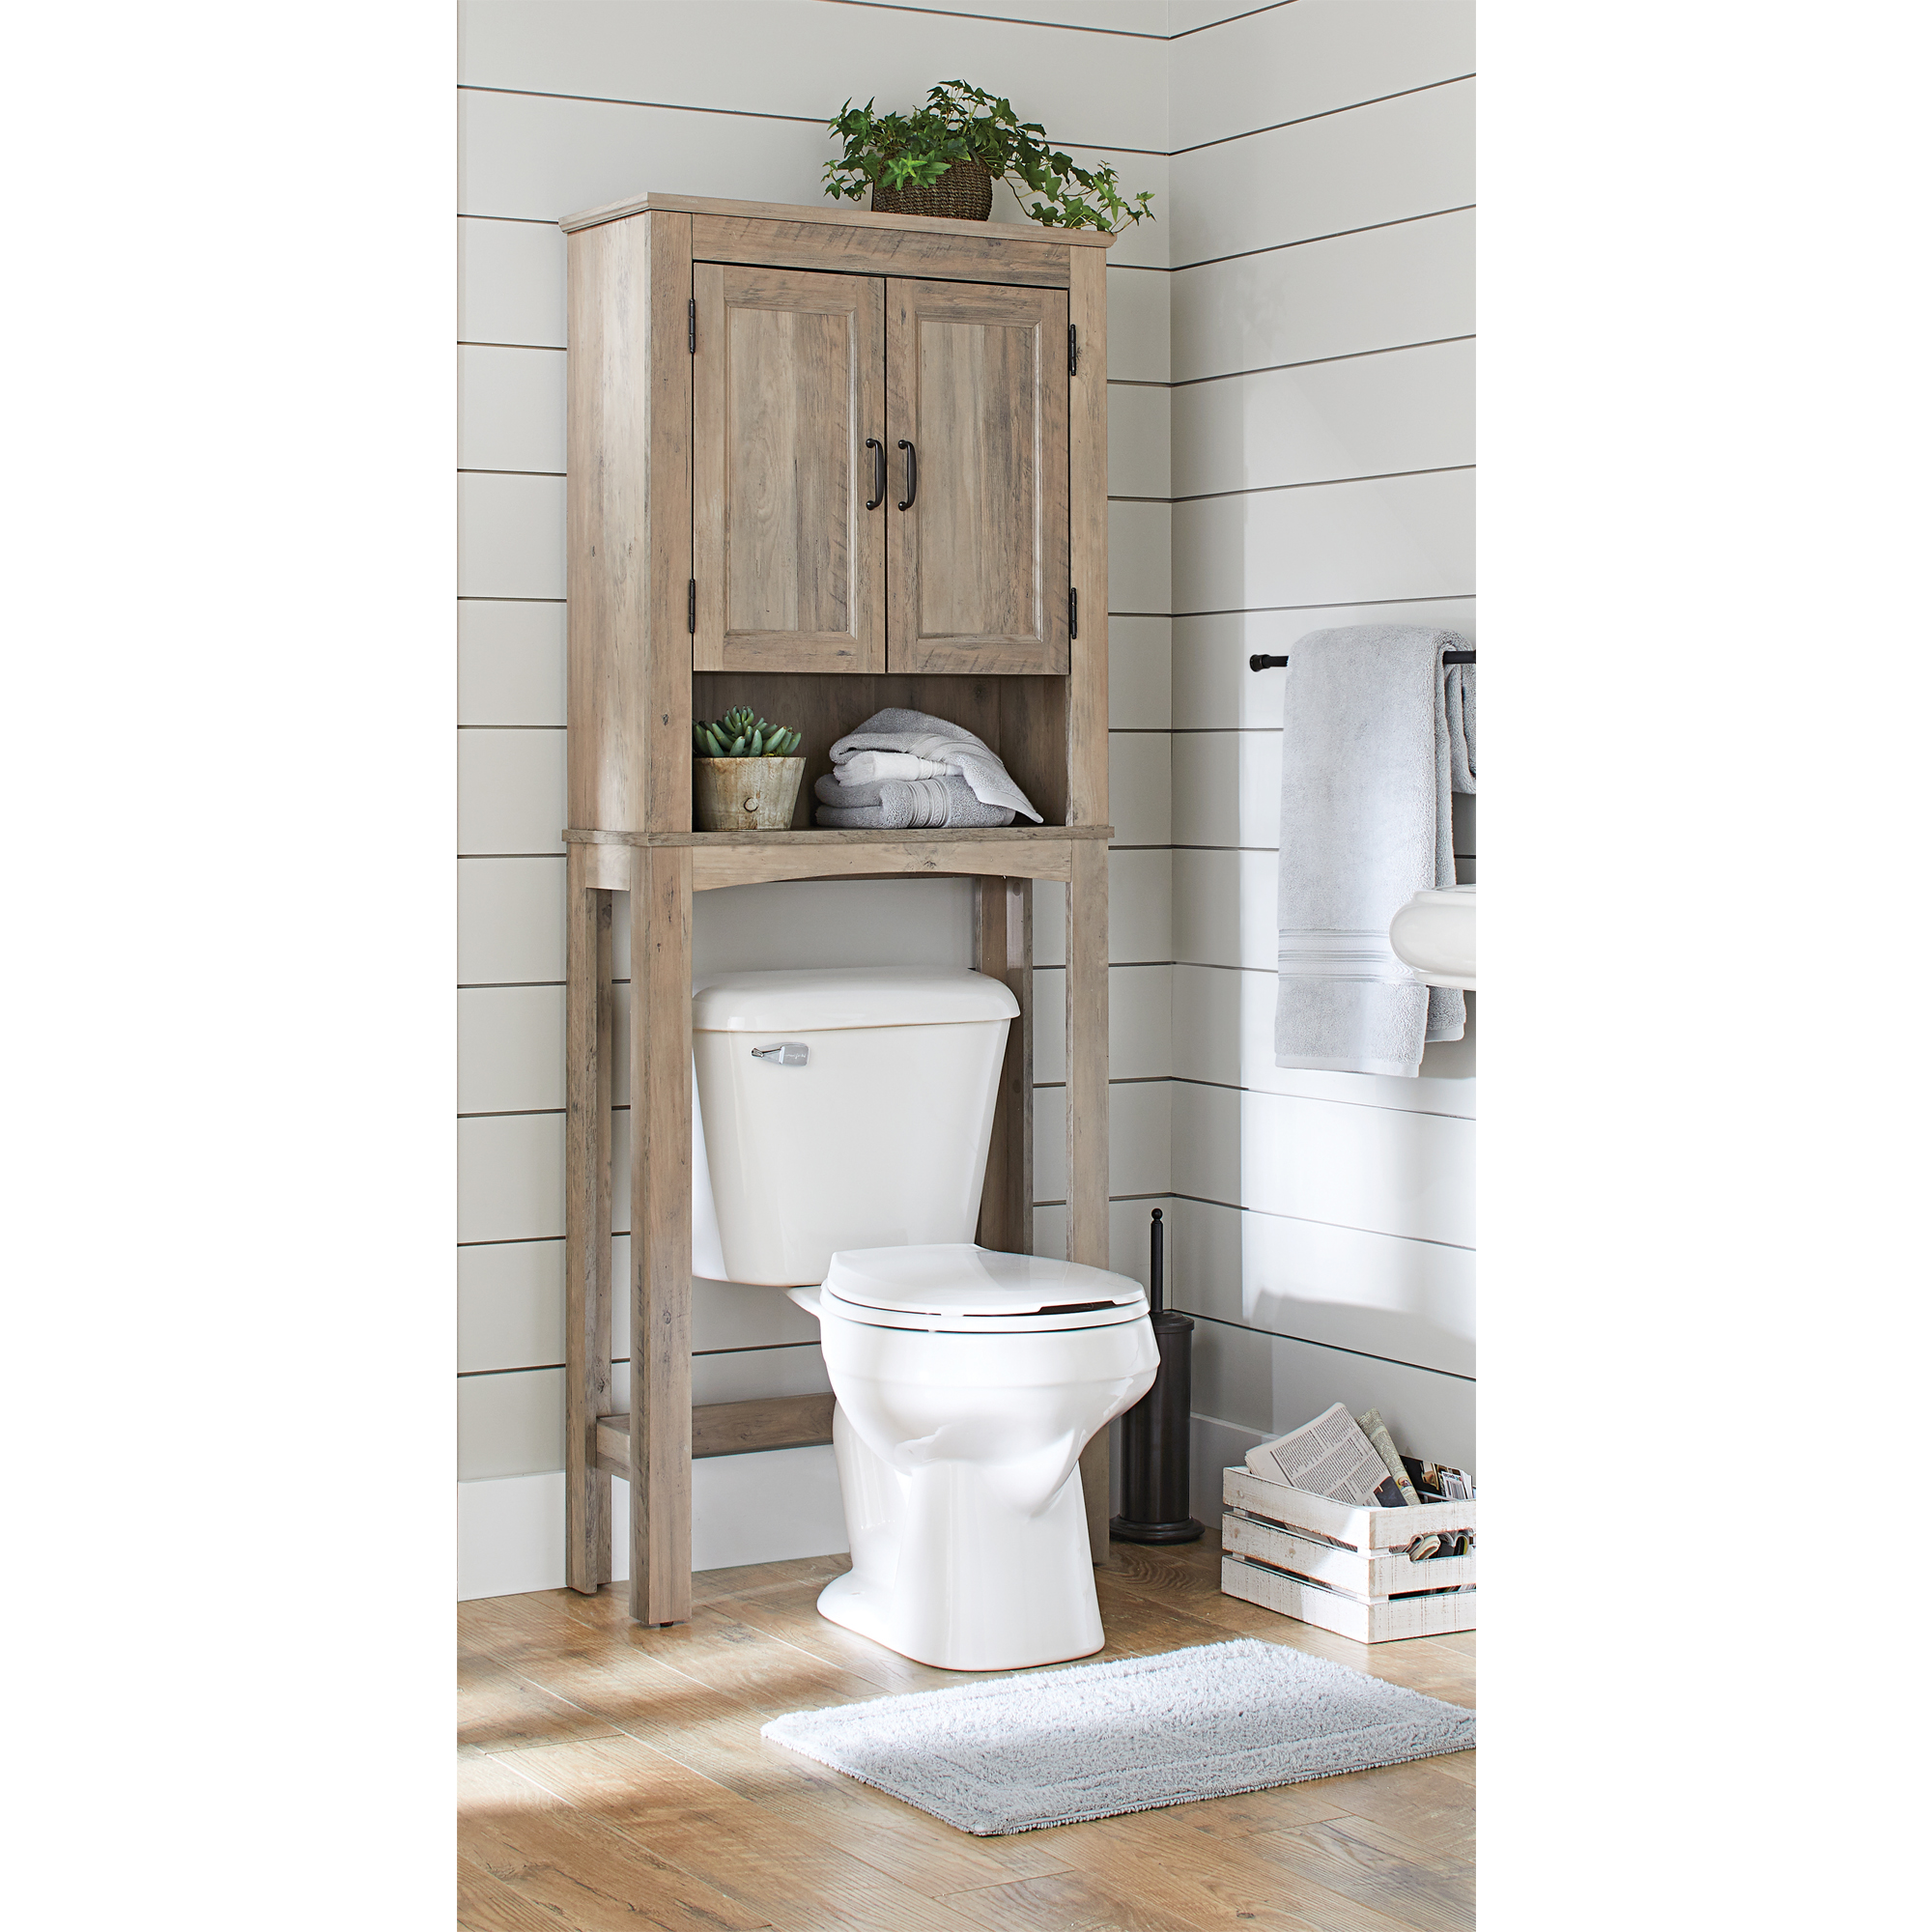 better homes gardens modern farmhouse over the toilet bathroom space saver with three shelves rustic gray finish